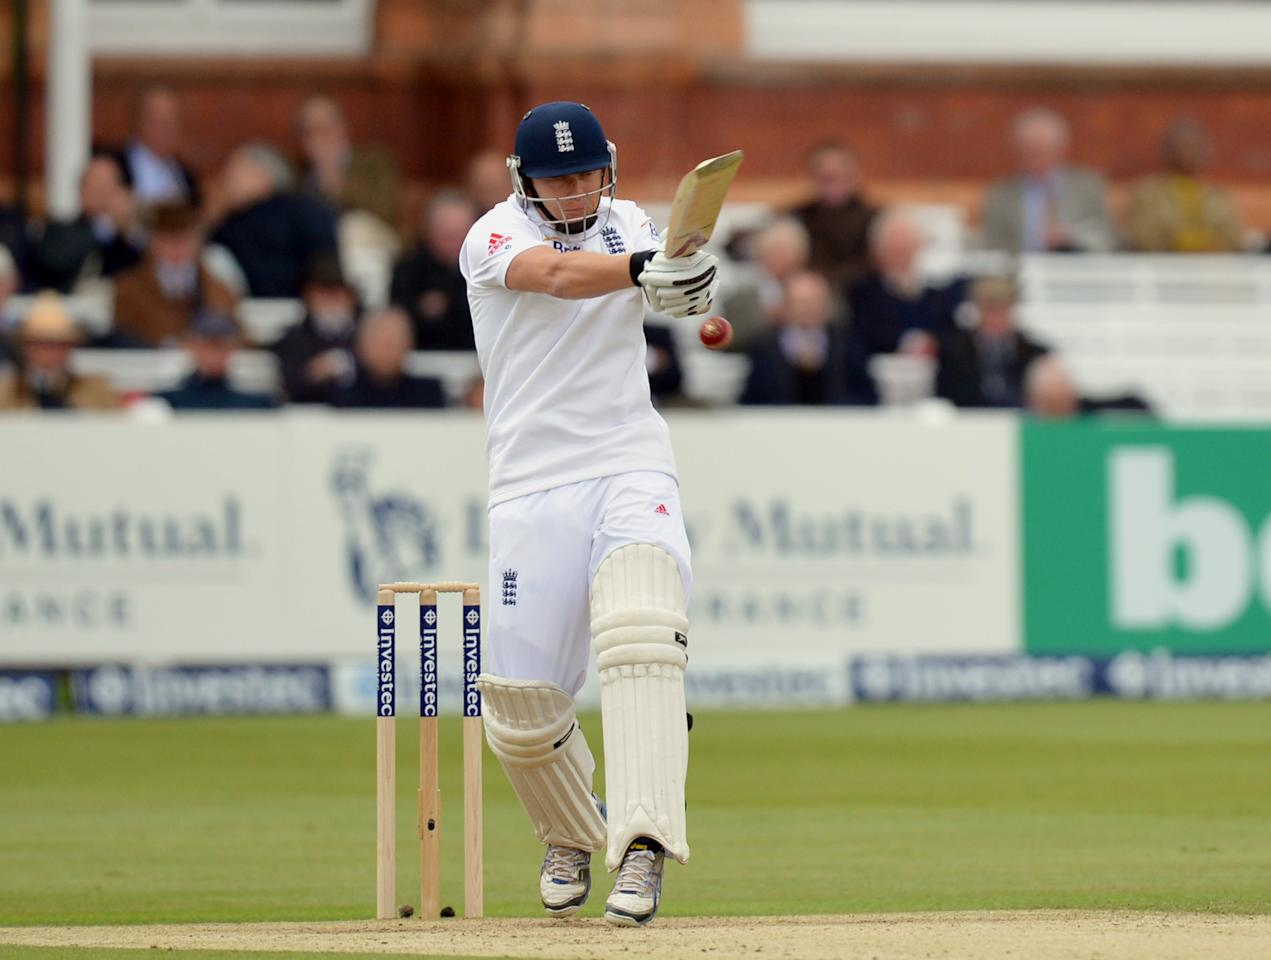 England's Johnny Bairstow bats during the first test at Lord's Cricket Ground, London.